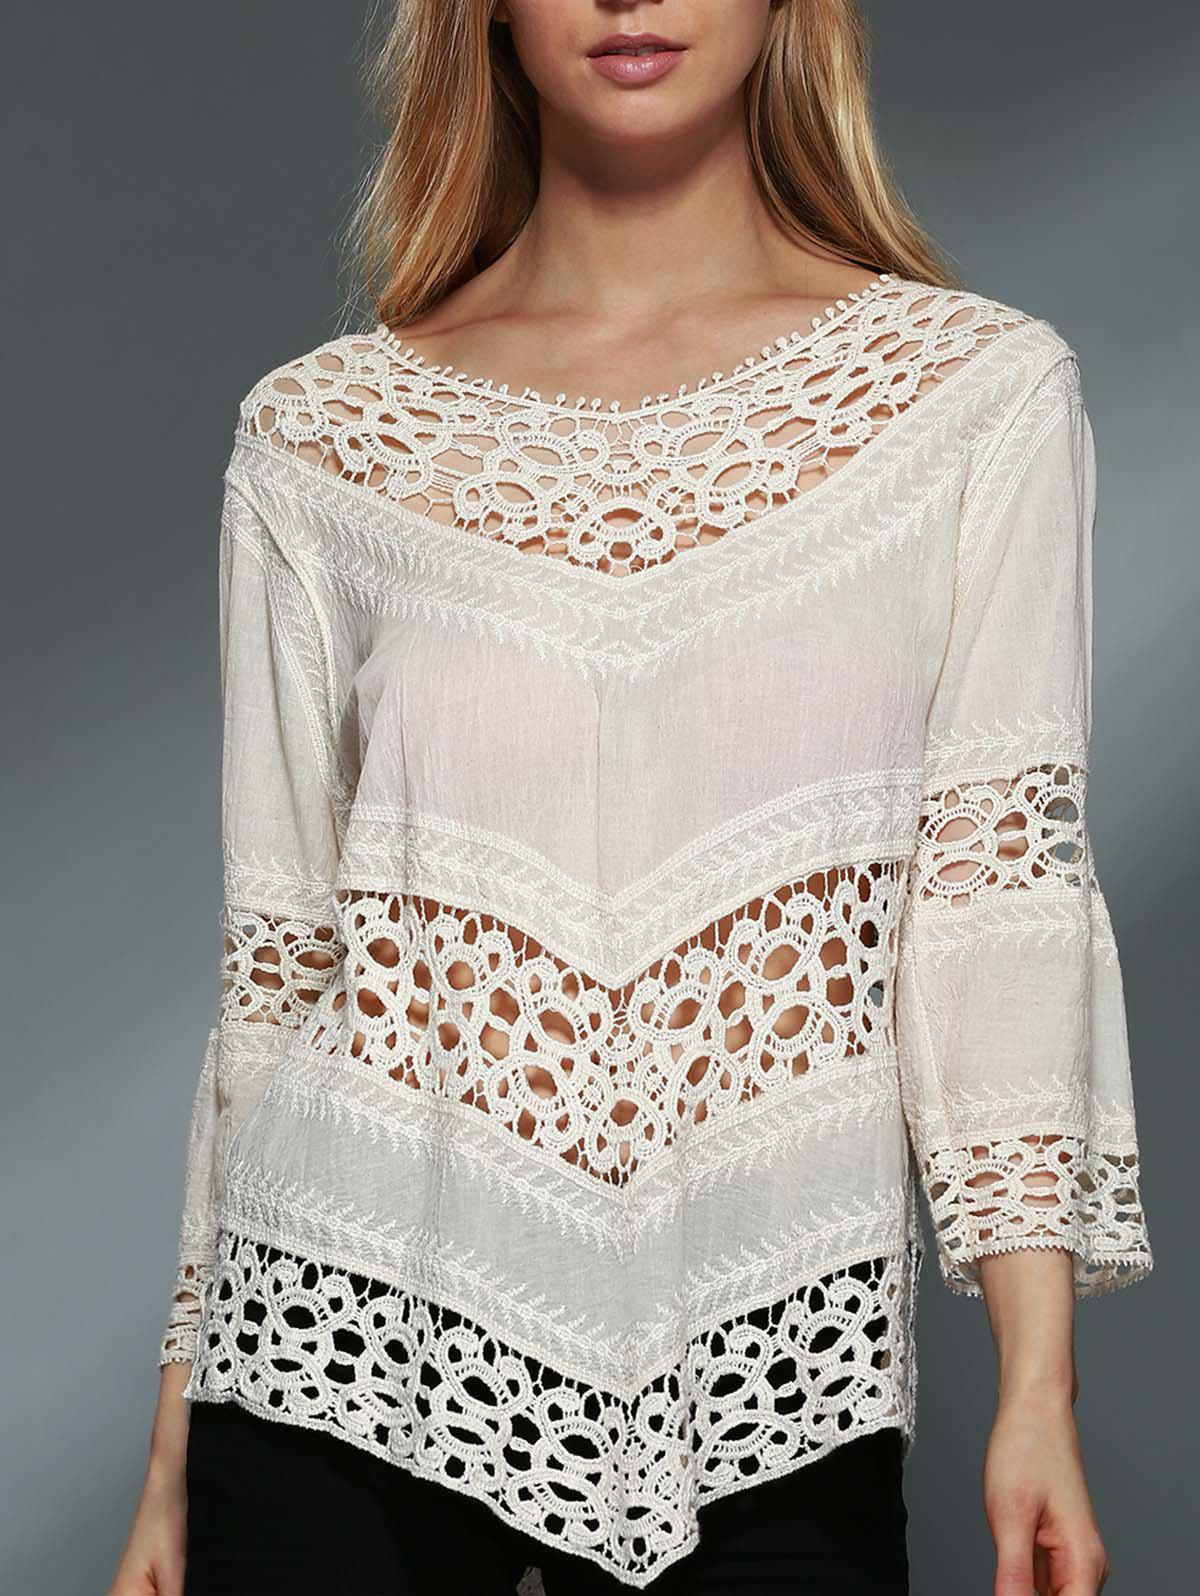 Stylish Scoop Neck 3/4 Sleeve Hollow Out Asymmetrical Women's Blouse - OFF WHITE ONE SIZE(FIT SIZE XS TO M)